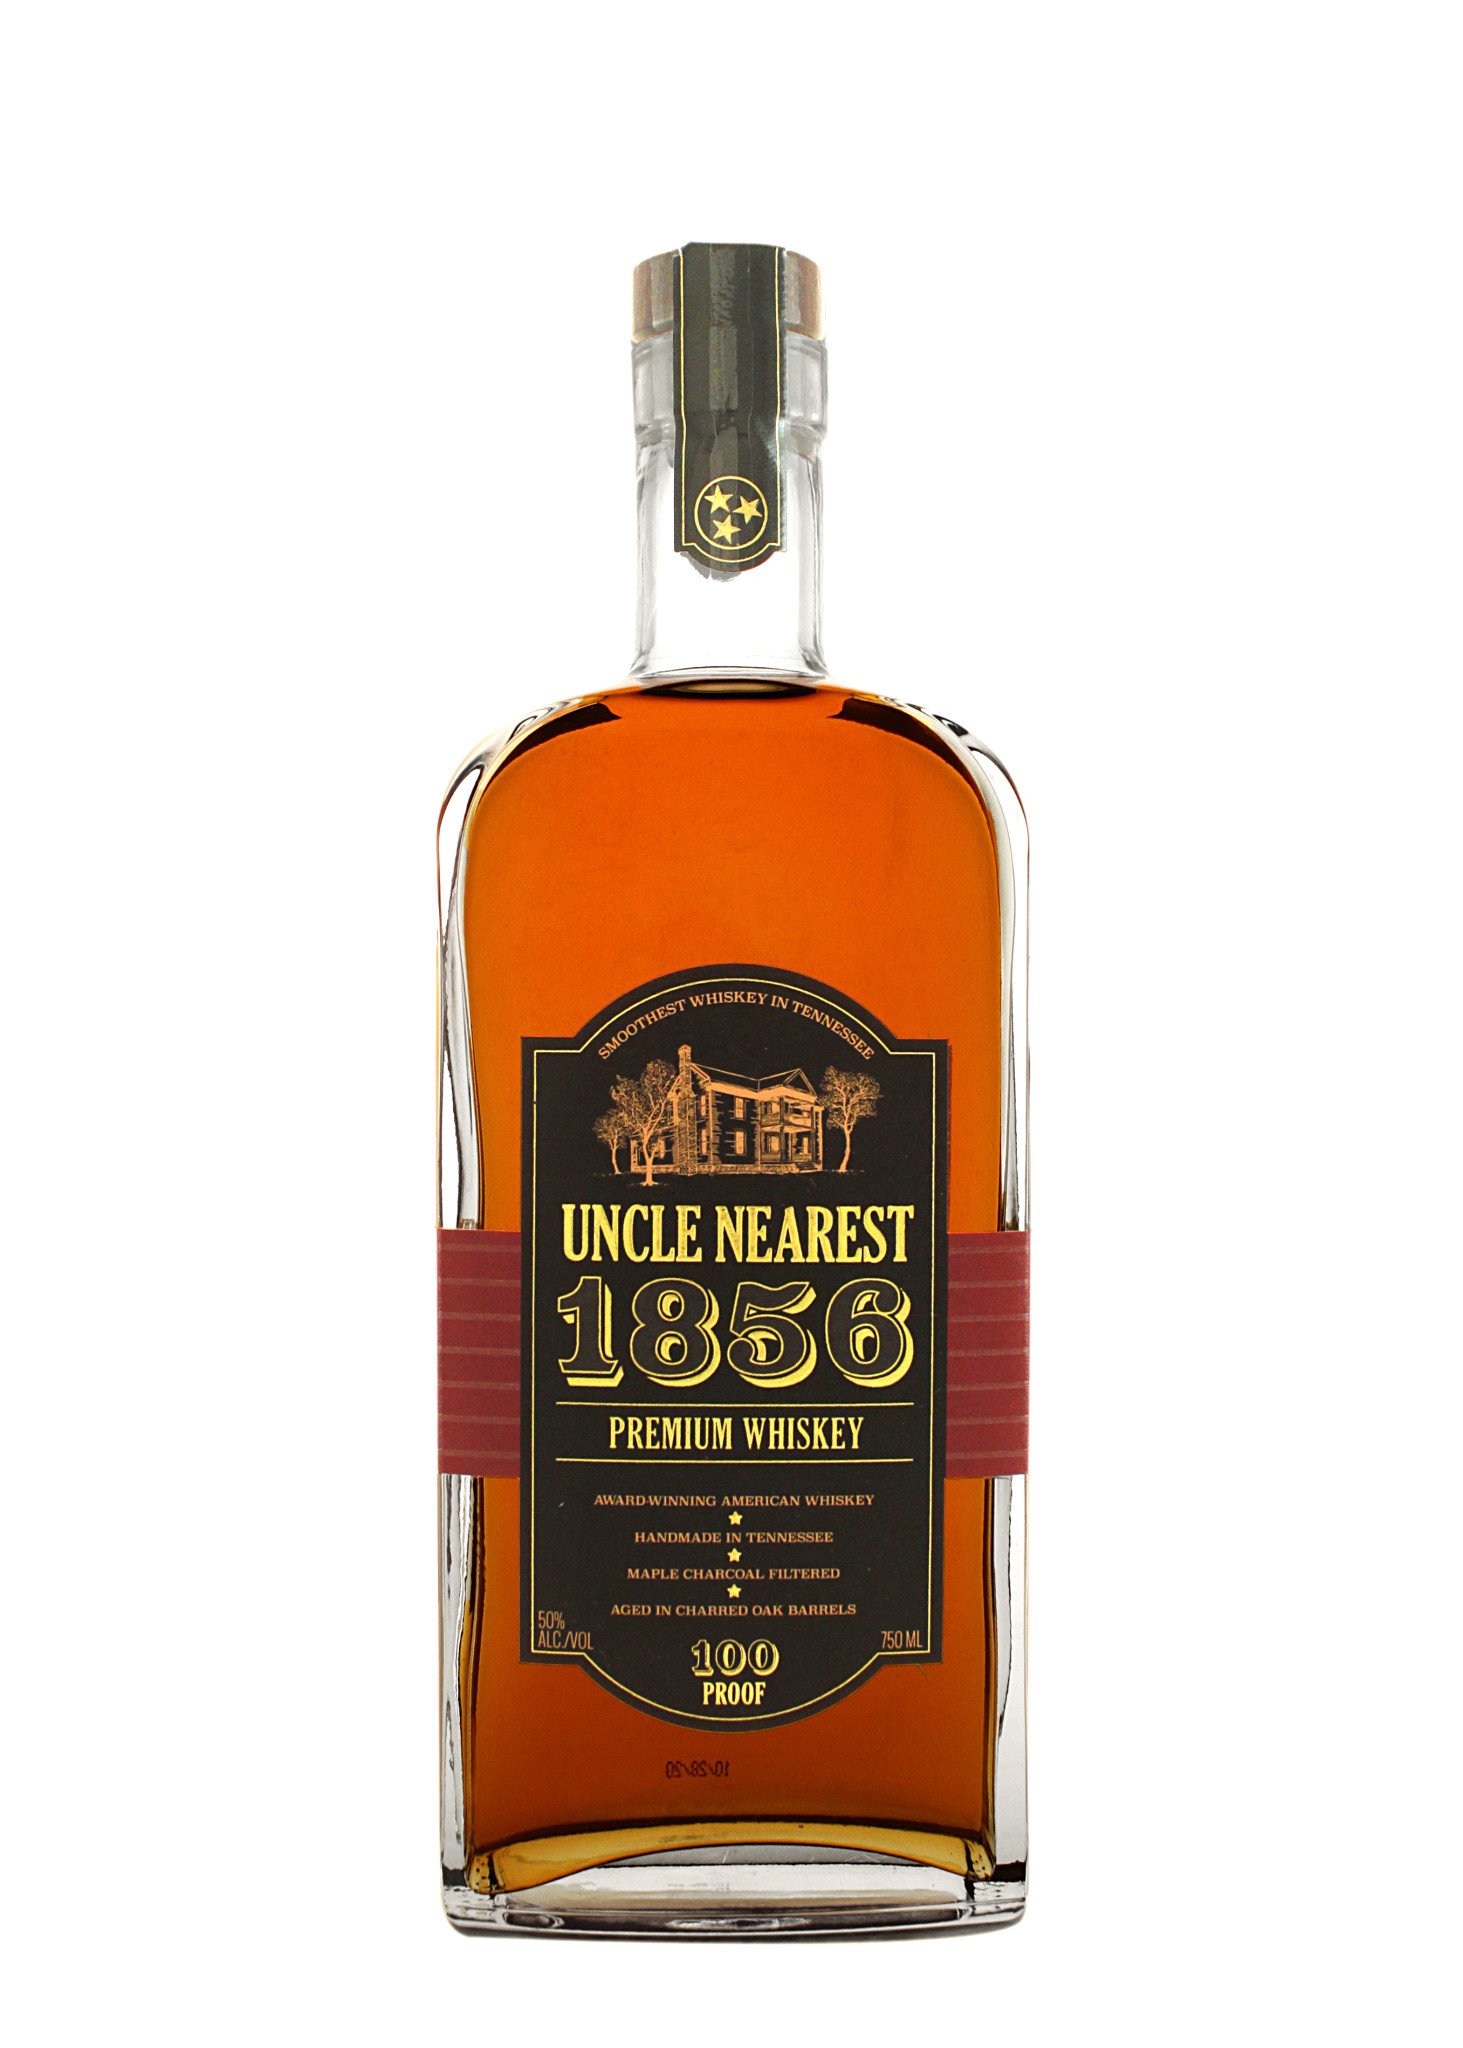 Uncle Nearest 1856 Premium Whiskey, 100 Proof, Shelbyville, Tennessee--FEBRUARY SPIRIT OF THE MONTH!